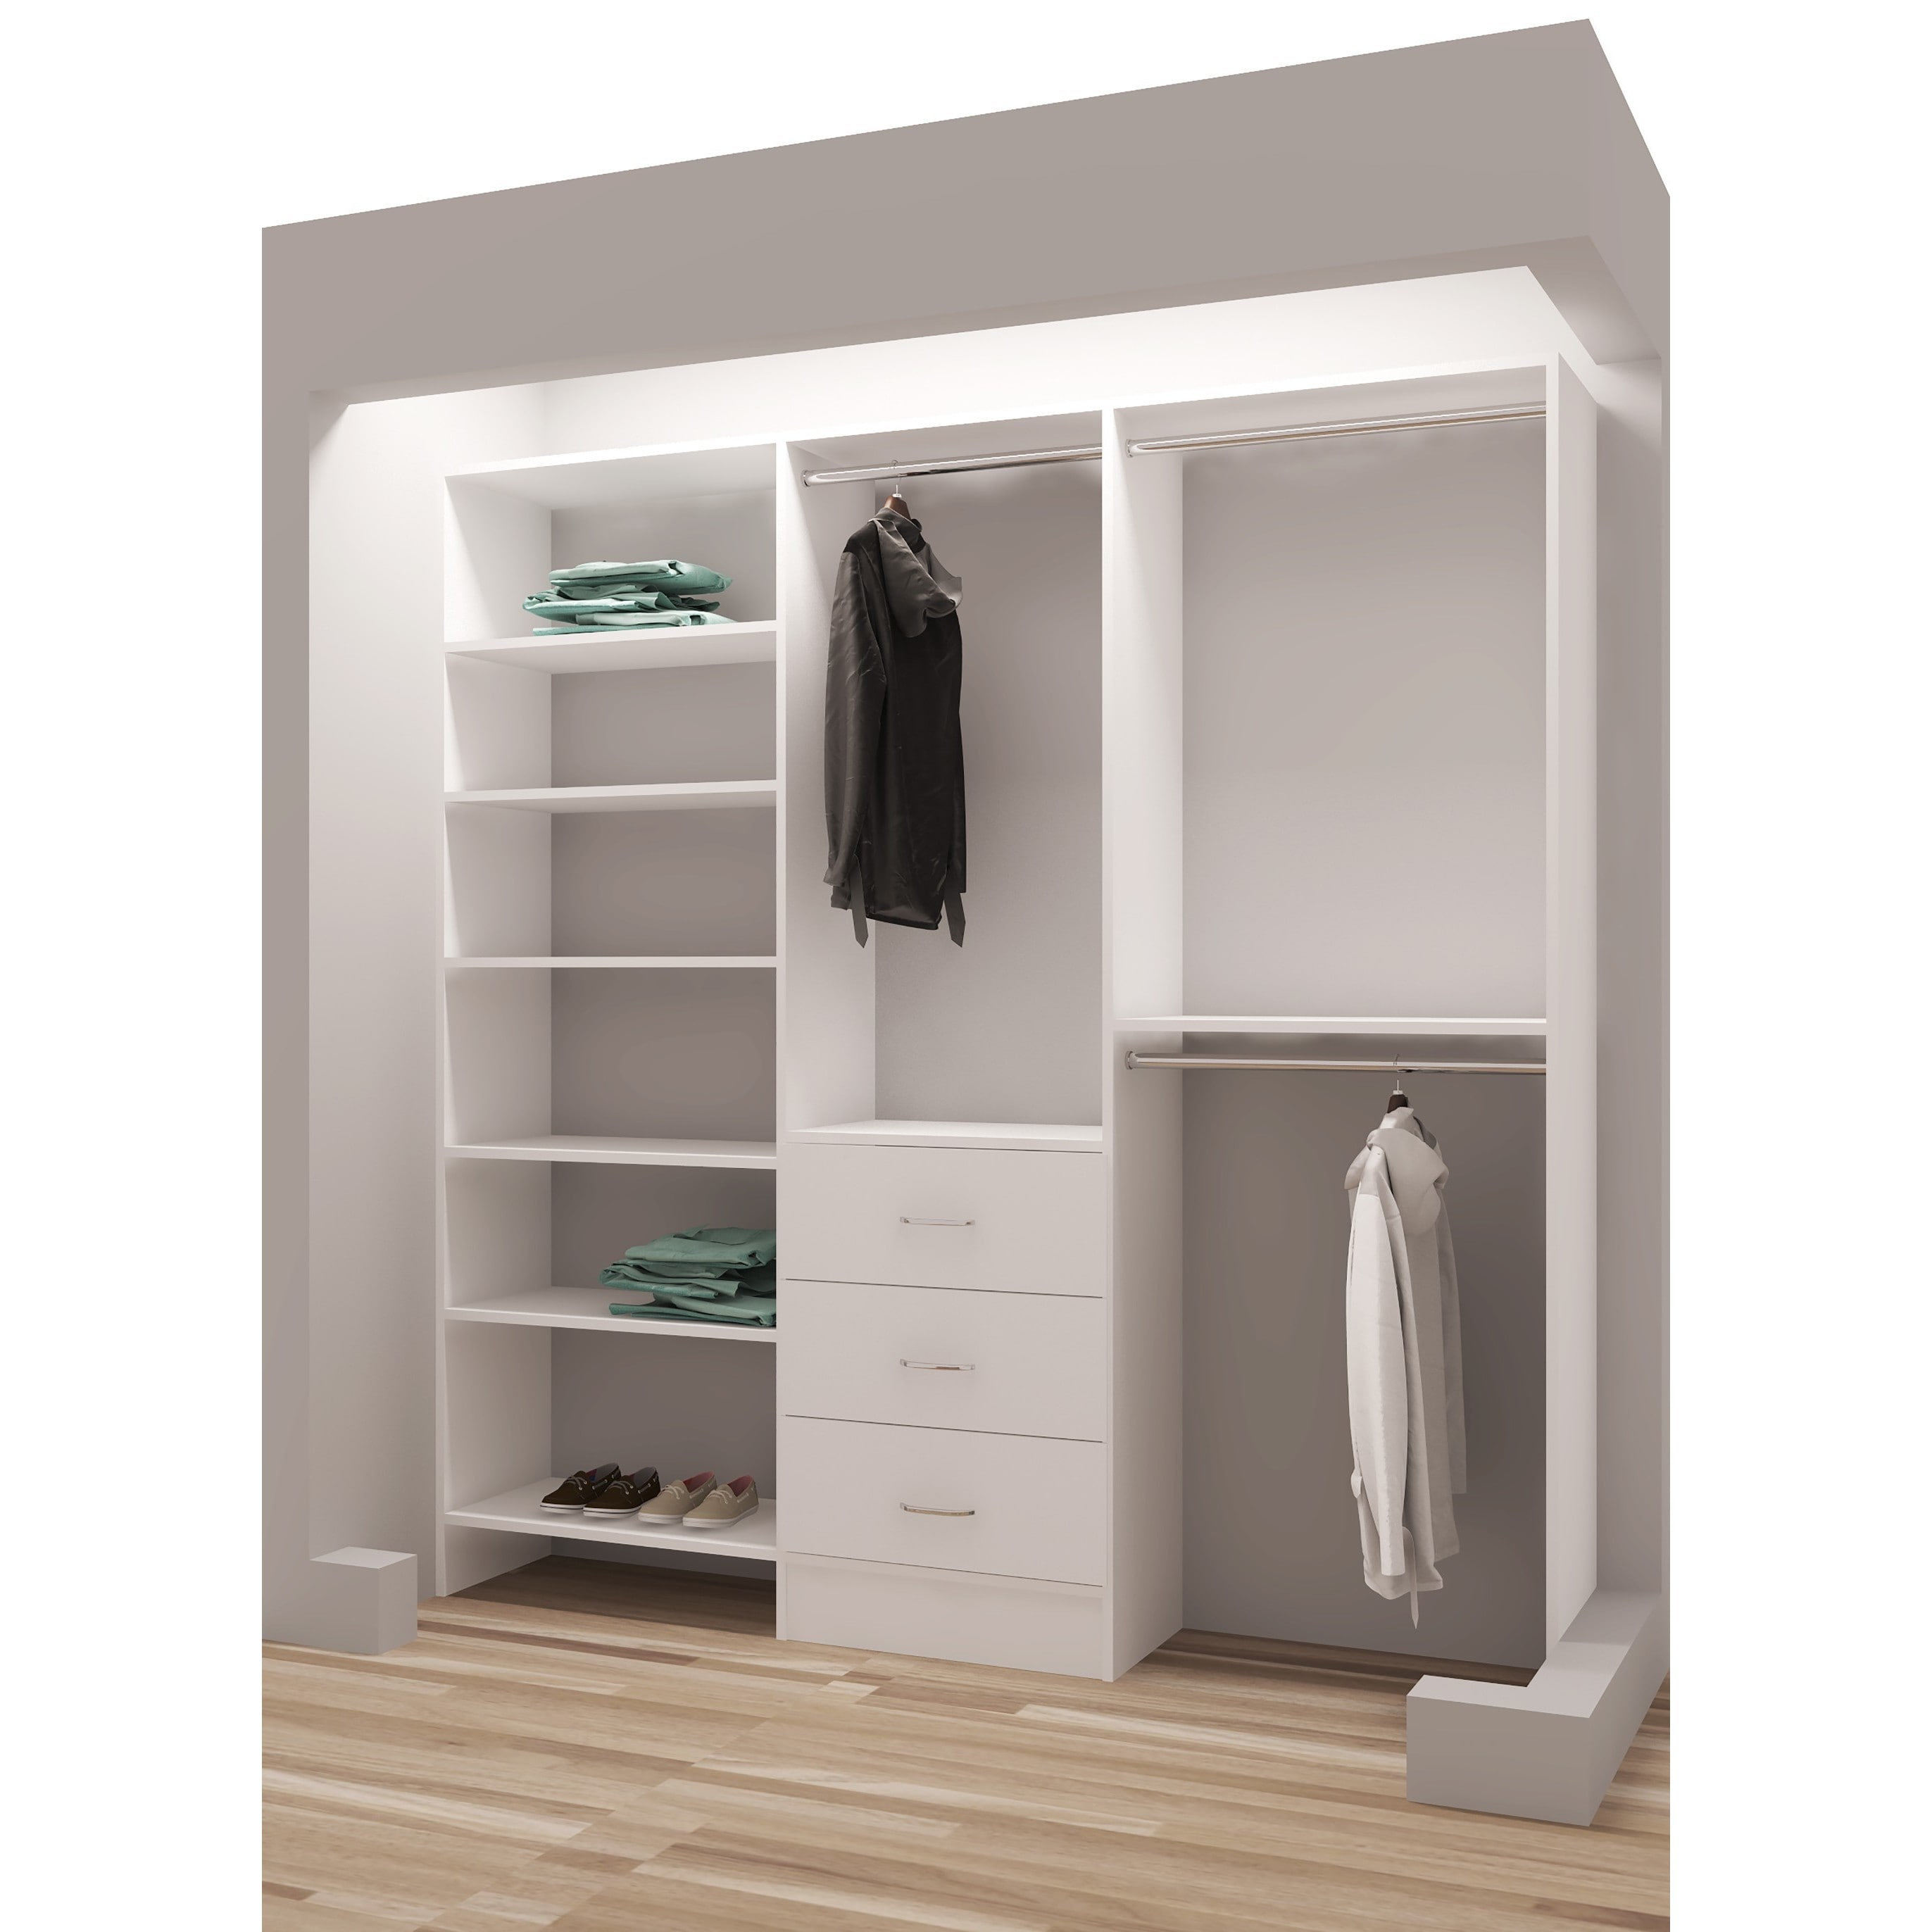 storage size design organizers solutions of build full closet bedroom units to pantry stand ideas a with walk clothes maximize how in systems your shelving alone shelves decorative wall organizer wardrobe